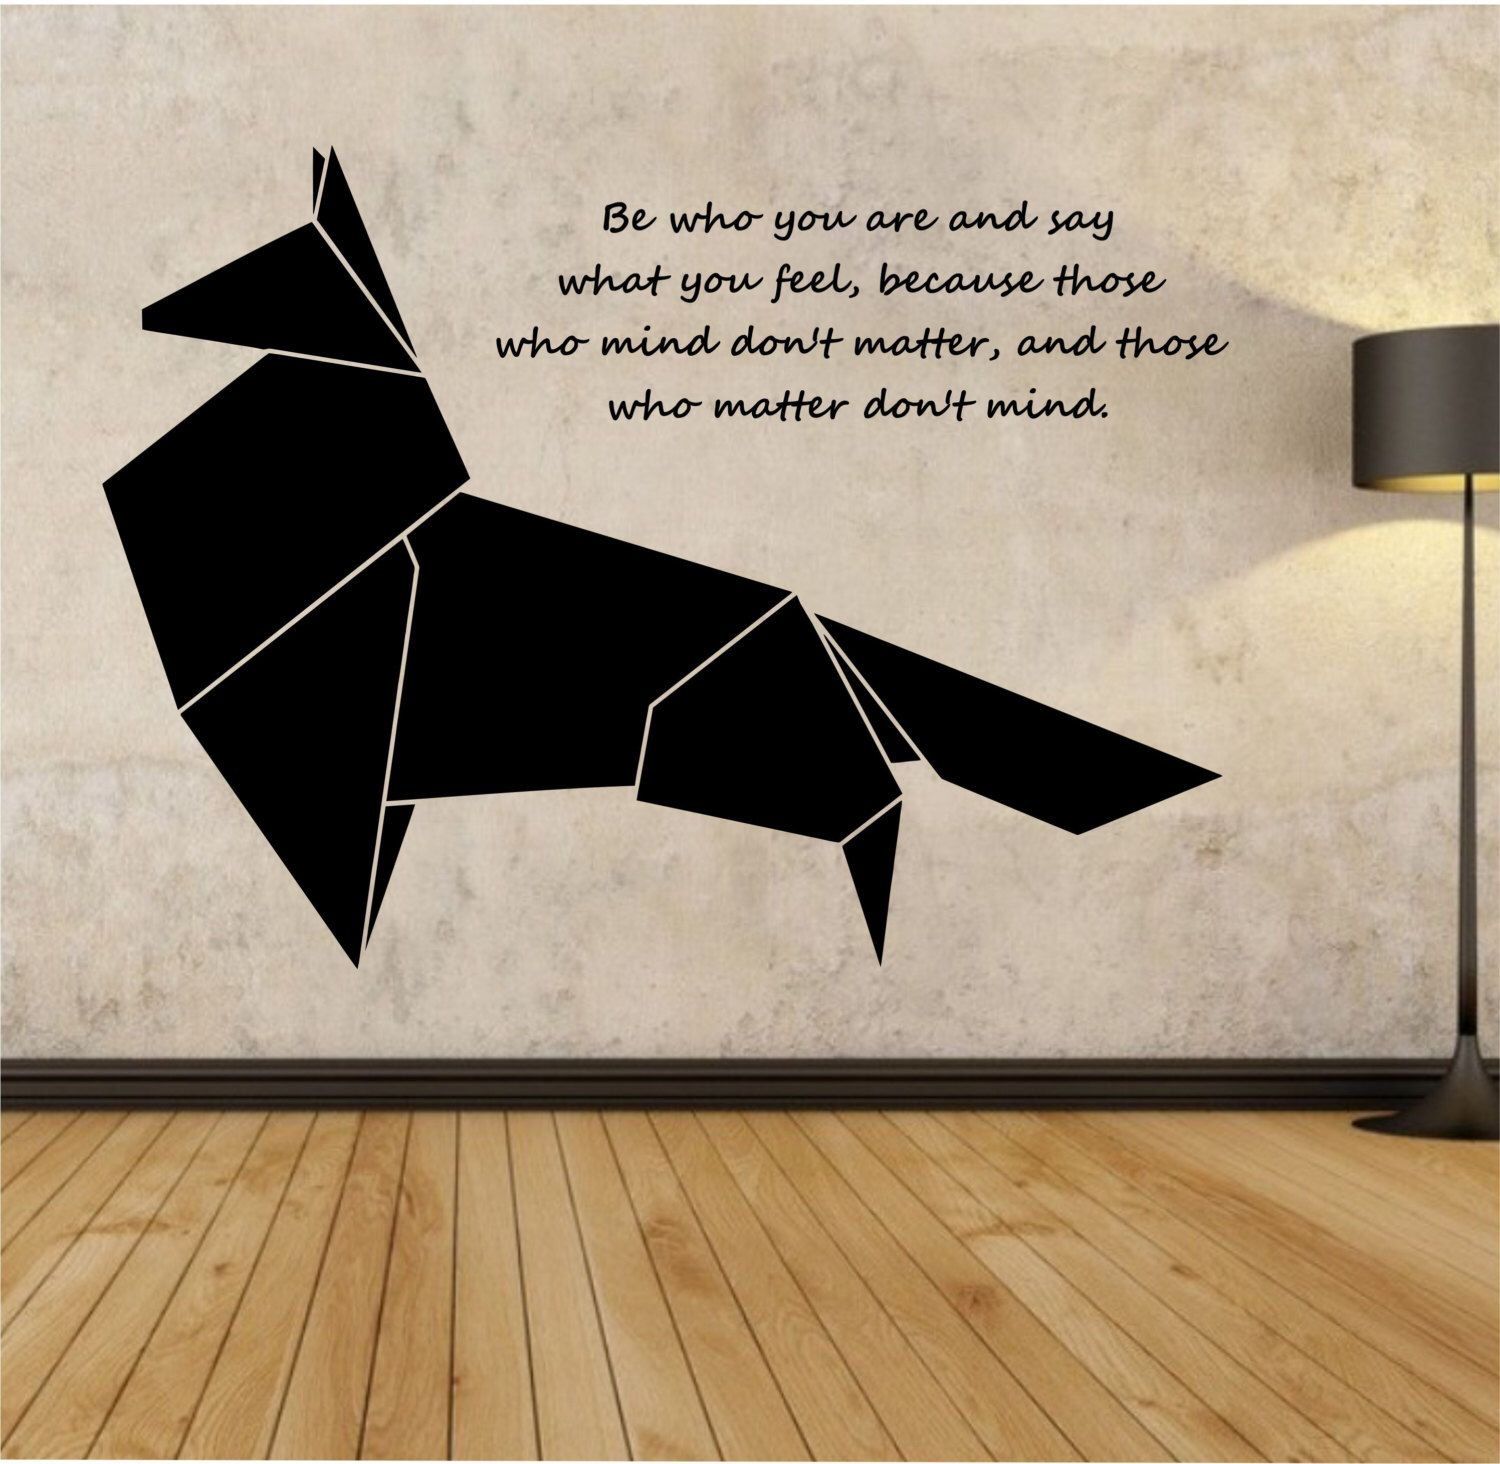 origami fox geometric vinyl wall decal sticker art decor bedroom design mural animal interior. Black Bedroom Furniture Sets. Home Design Ideas